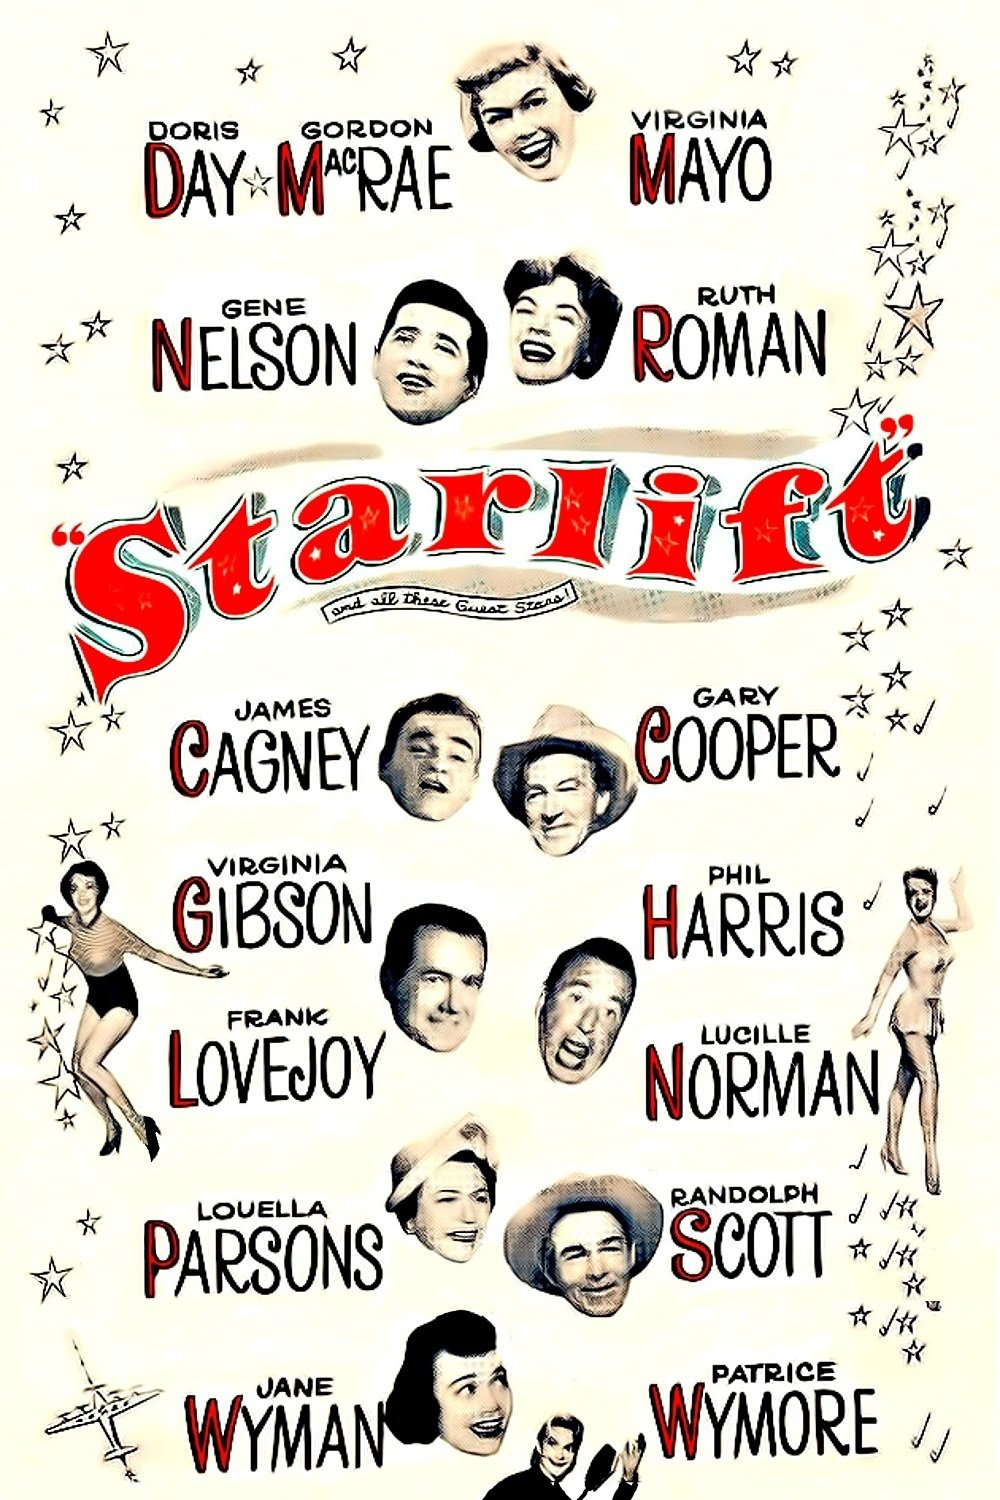 - Air Force fliers Rick Williams and Mike Nolan attempt to meet film star Nell Wayne, with whom Rick shares a hometown but not much else. Fellow film stars Doris Day and Ruth Roman mistakenly believe Rick to be very close to Nell and arrange for him to meet her. The pair begin to form a match, especially after Nell, Doris, and Ruth arrange for Hollywood stars to perform for G.I.s in transit to and from the Korean War, at Travis Air Base. But Nell thinks Rick is getting ready to ship out to the war, when in reality, he and Mike ferry troops part of the way then return to Travis Air Base with returning soldiers. Nell is furious with Rick for letting her believe he was headed to a war zone, especially because the press has made a huge story of their romance. Meantime, a new program, Operation Starlift, has been set in place by the Air Force and the Hollywood studios, whereby stars are flown to San Francisco to perform for the outbound and inbound troops19511 h 43 min